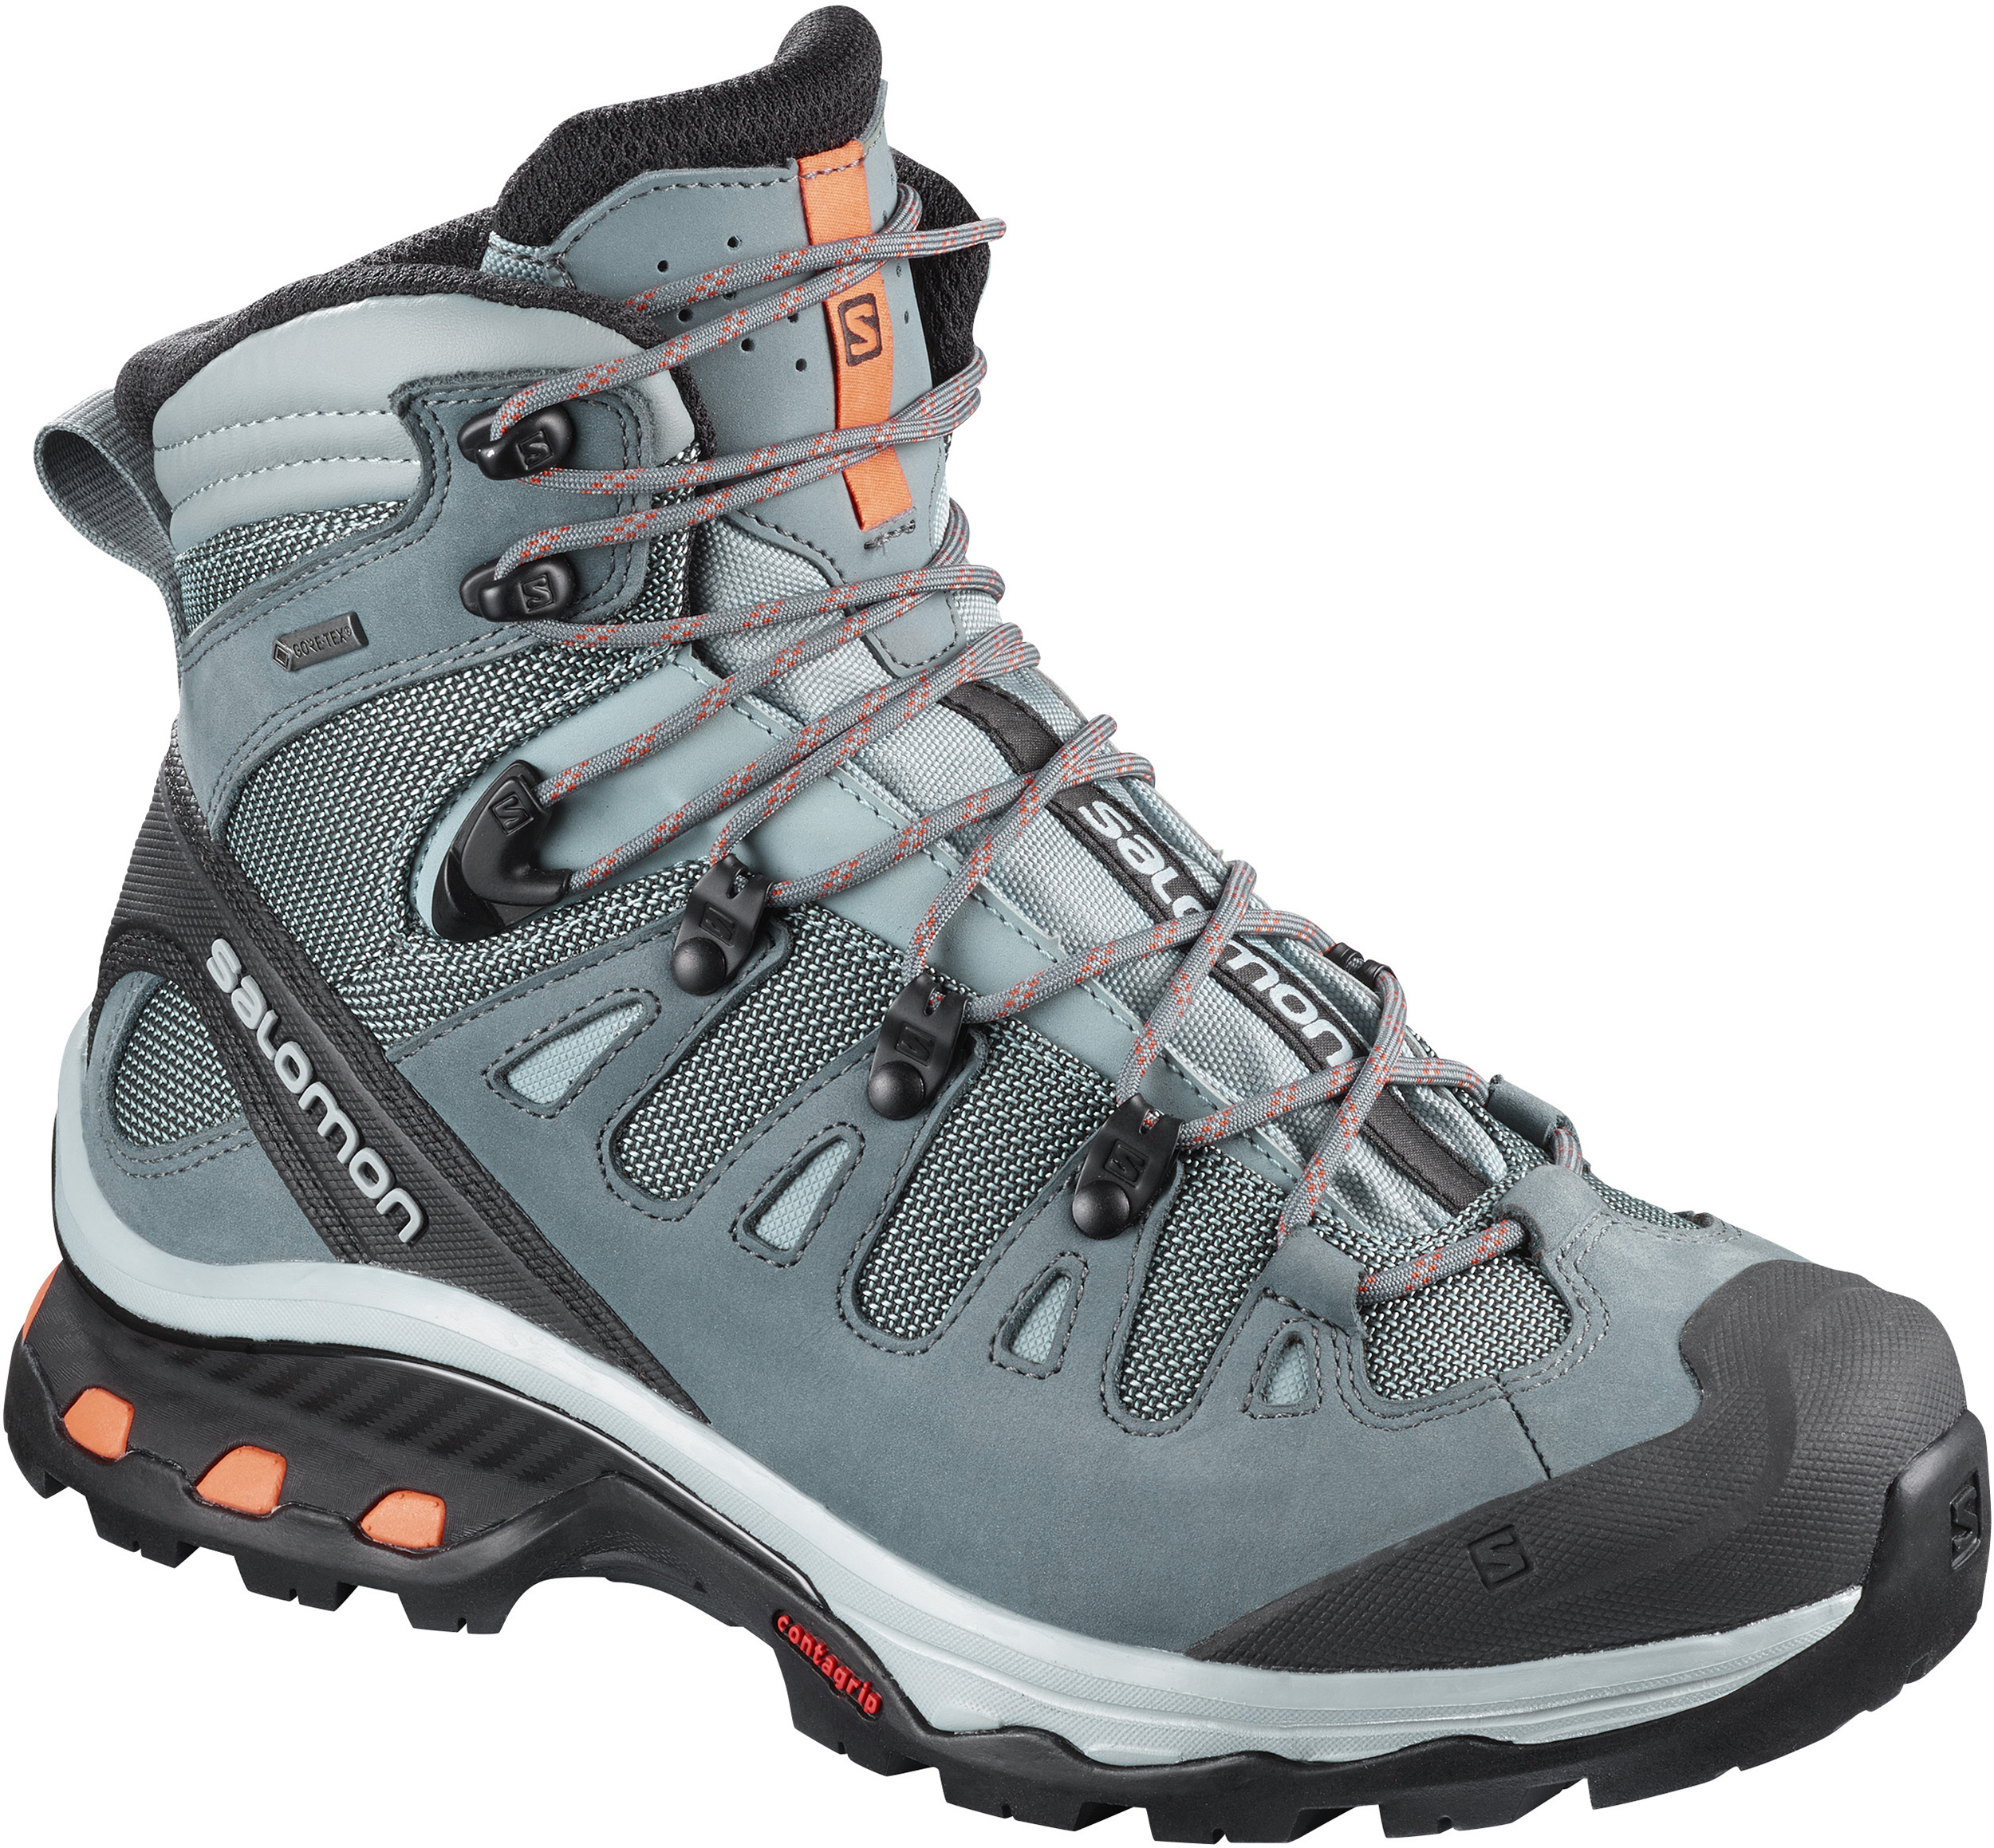 Tex Salomon Boots Women's Quest Gore Hiking 4d 3 YWD9IEH2